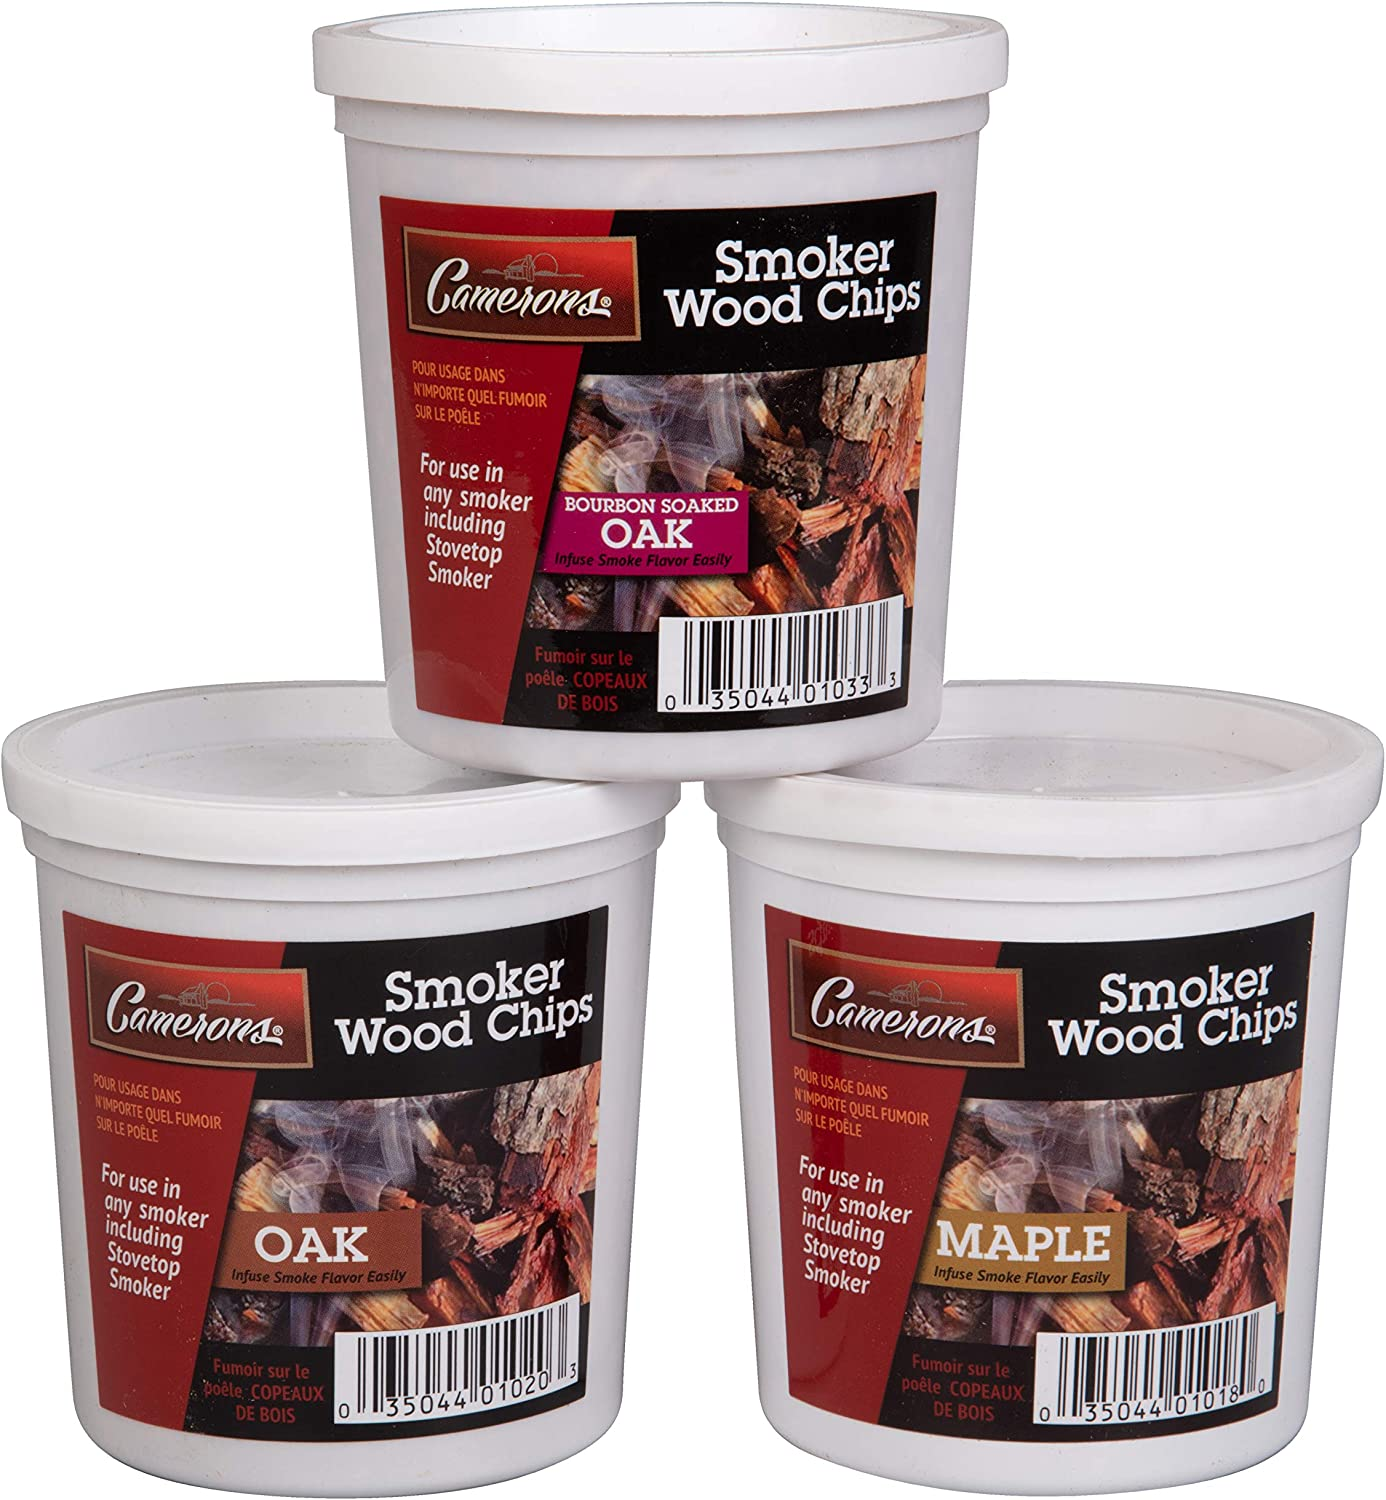 Wood Smoking Chips - Bourbon Soaked Oak, Maple, and Oak Wood Chips for Smokers - Set of 3 Resealable Pints (0.473176 L)